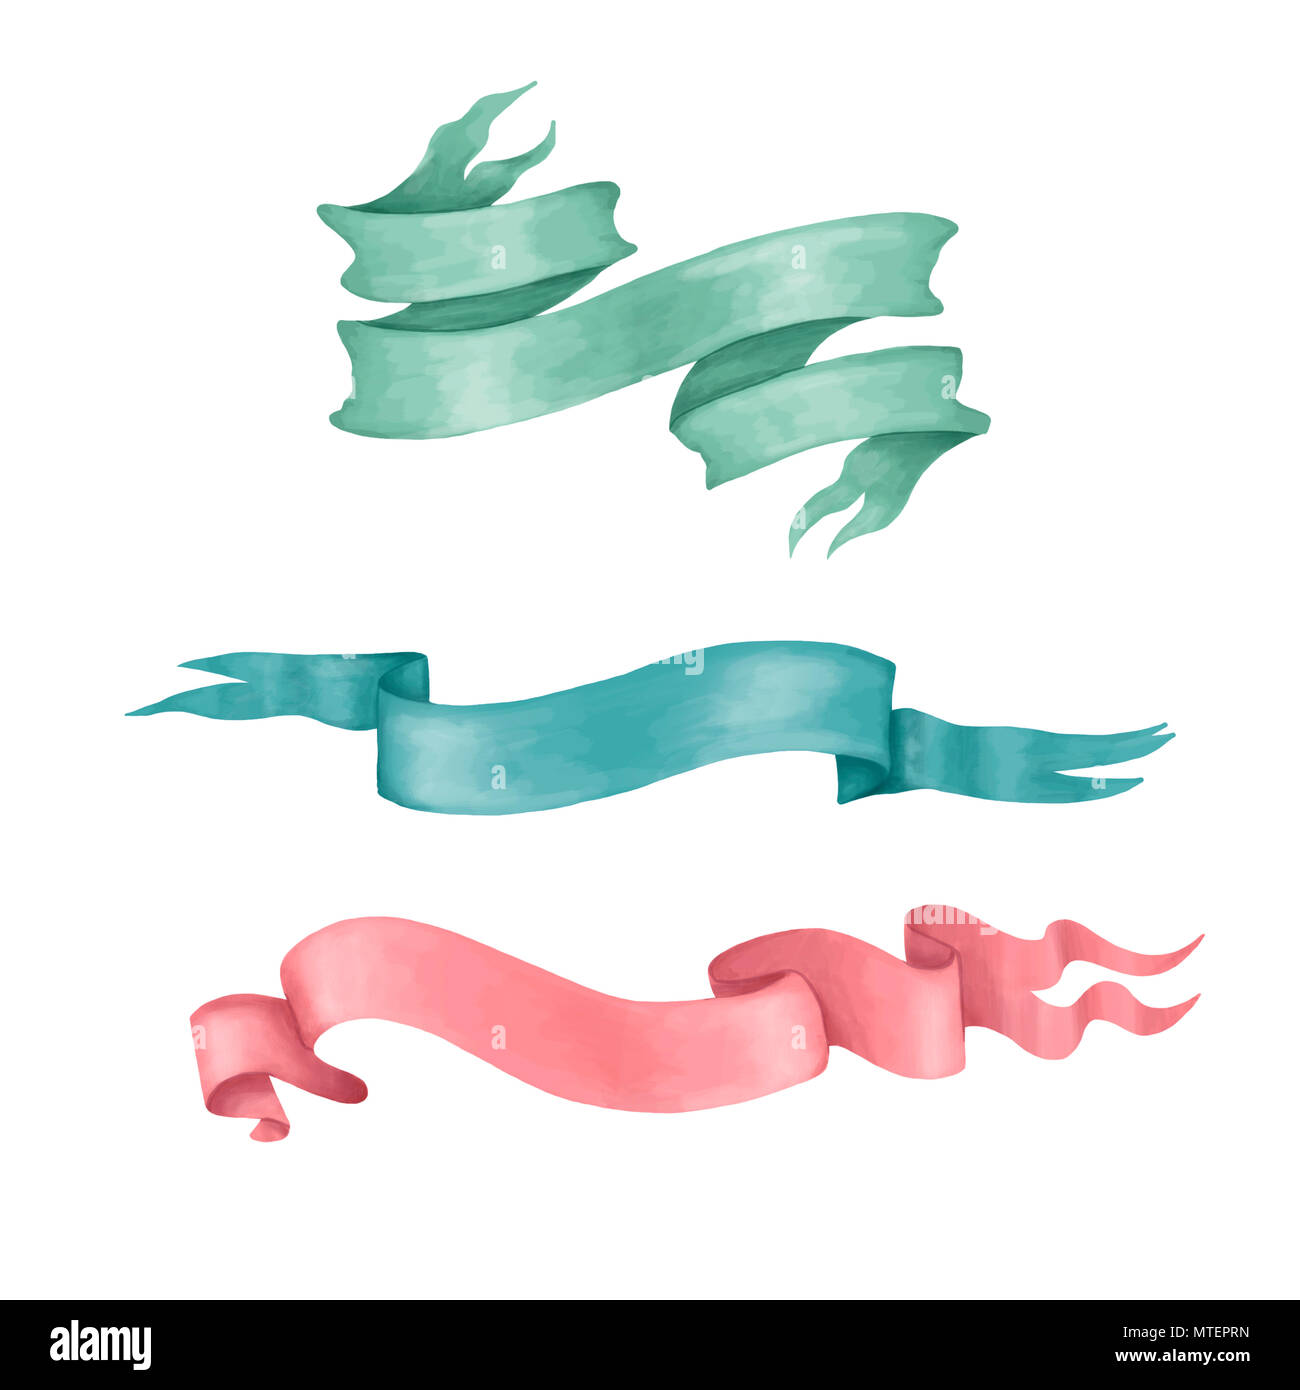 Farbbänder clip art digitale Ribbon Set-flag Farbe Grün Rot Blau für Hochzeit, Geburtstag, Feier auf weißem Hintergrund Stockbild